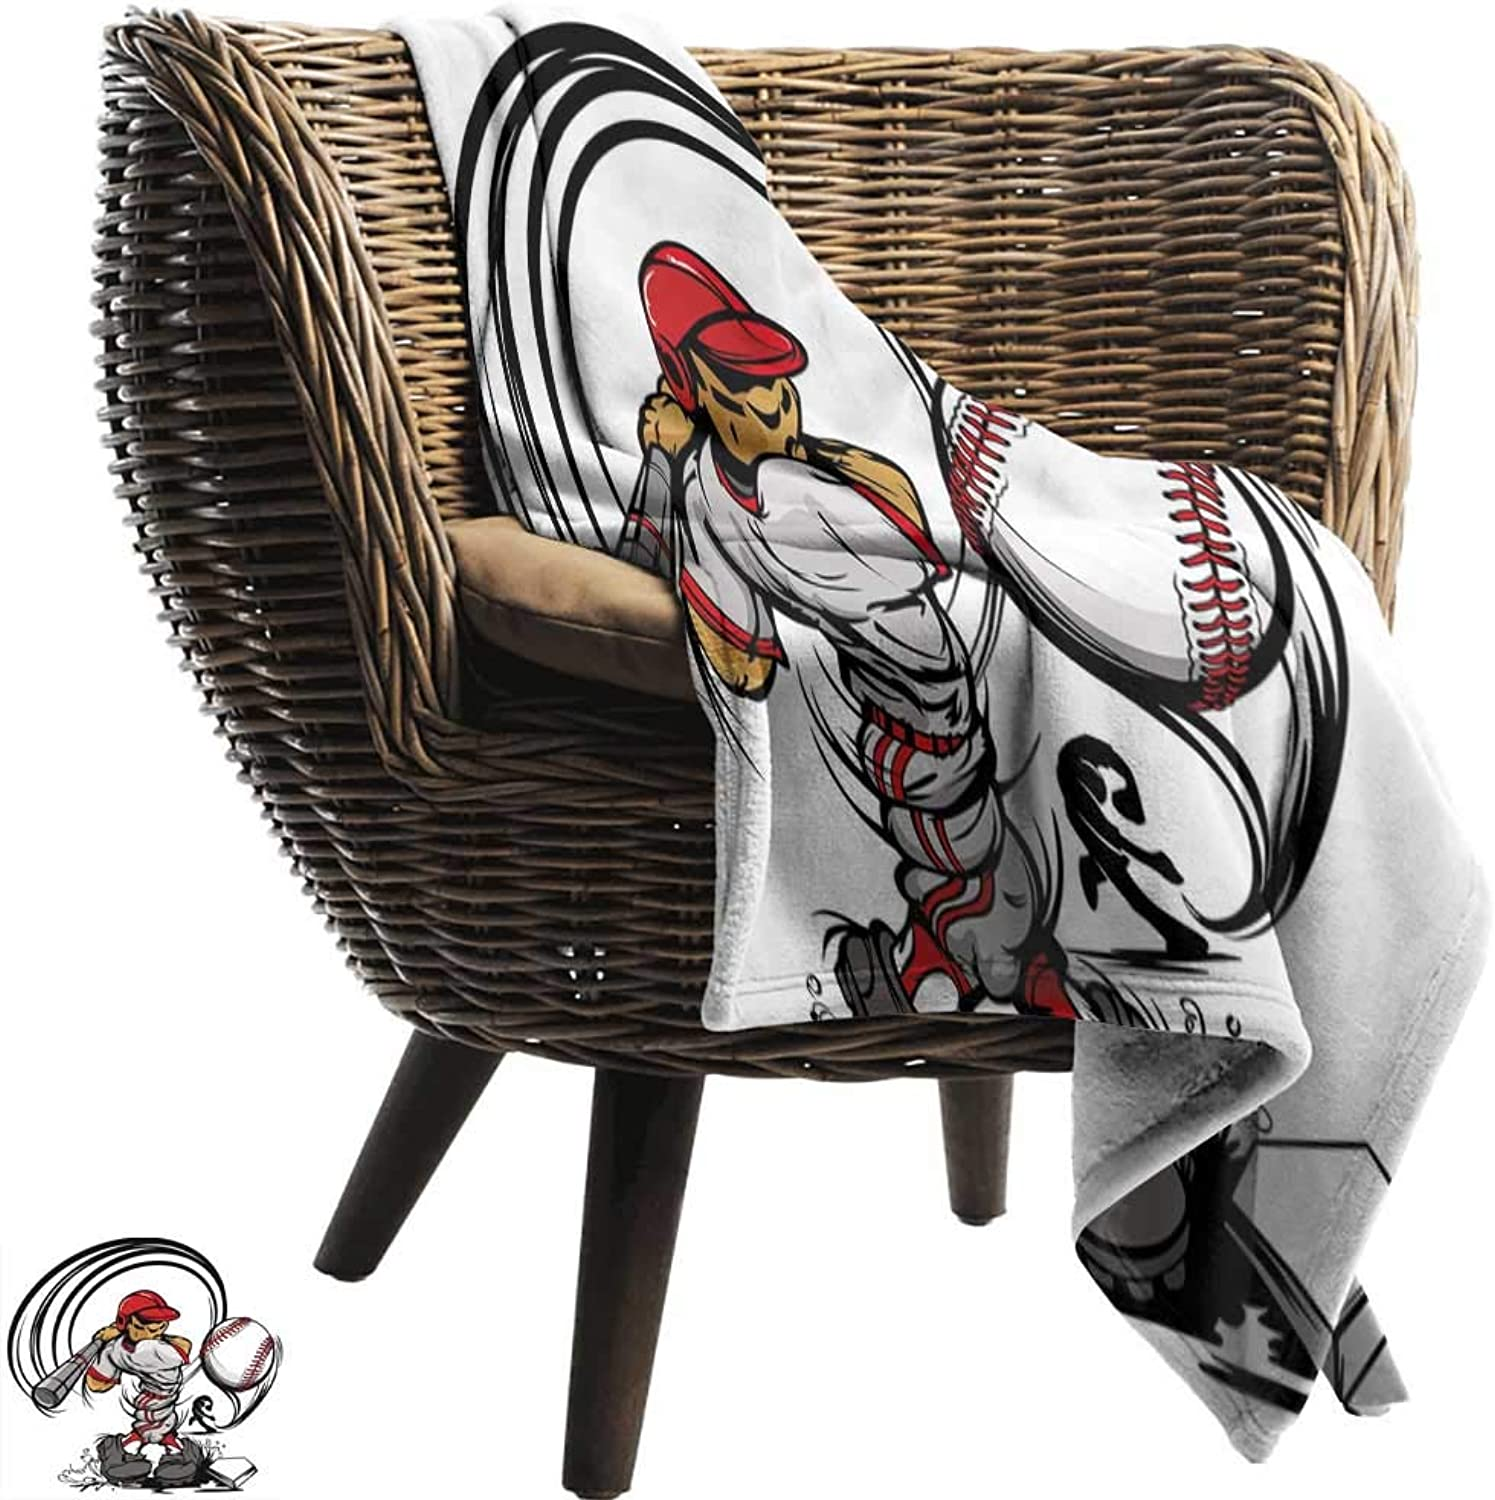 BelleAckerman Throw Blanket,Teen Room Decor,Baseball Cartoon Player Hitting The Ball Boys Kids Caricature Print,Grey Red White,Sofa Super Soft, Plush, Fuzzy Microfiber Throw Reversible,Comfy 50 x70